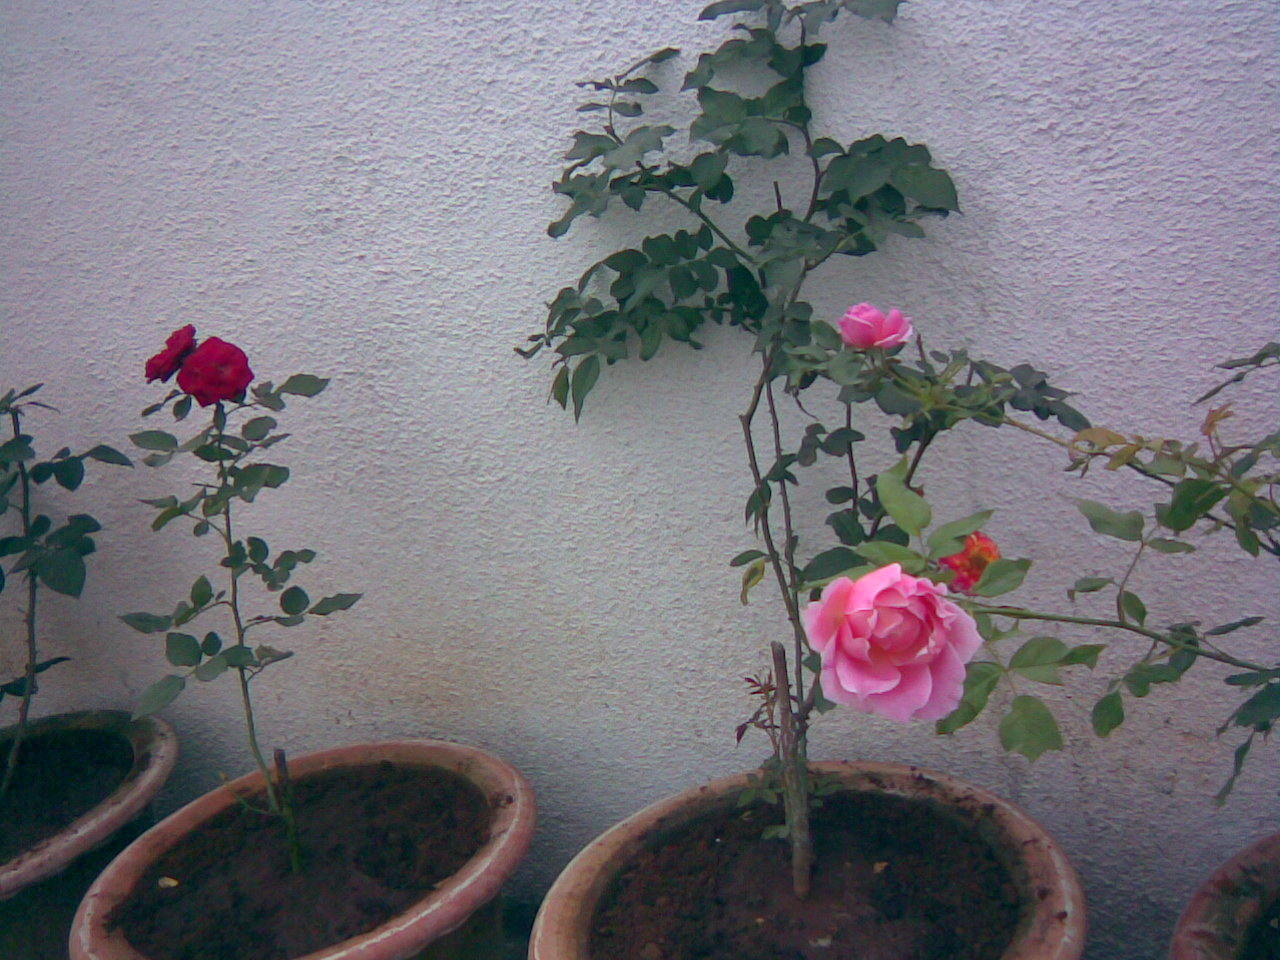 http://2.bp.blogspot.com/-EvEBnMKoxwI/TcUlUen07II/AAAAAAAABHY/XwGbY2Ytrk0/s1600/pink+red+roses+plant+in+my+garden+ree+pictures+of+roses%252C+rose+clipart+and+wallpaper.+Free+rose+greeting+cards.jpg